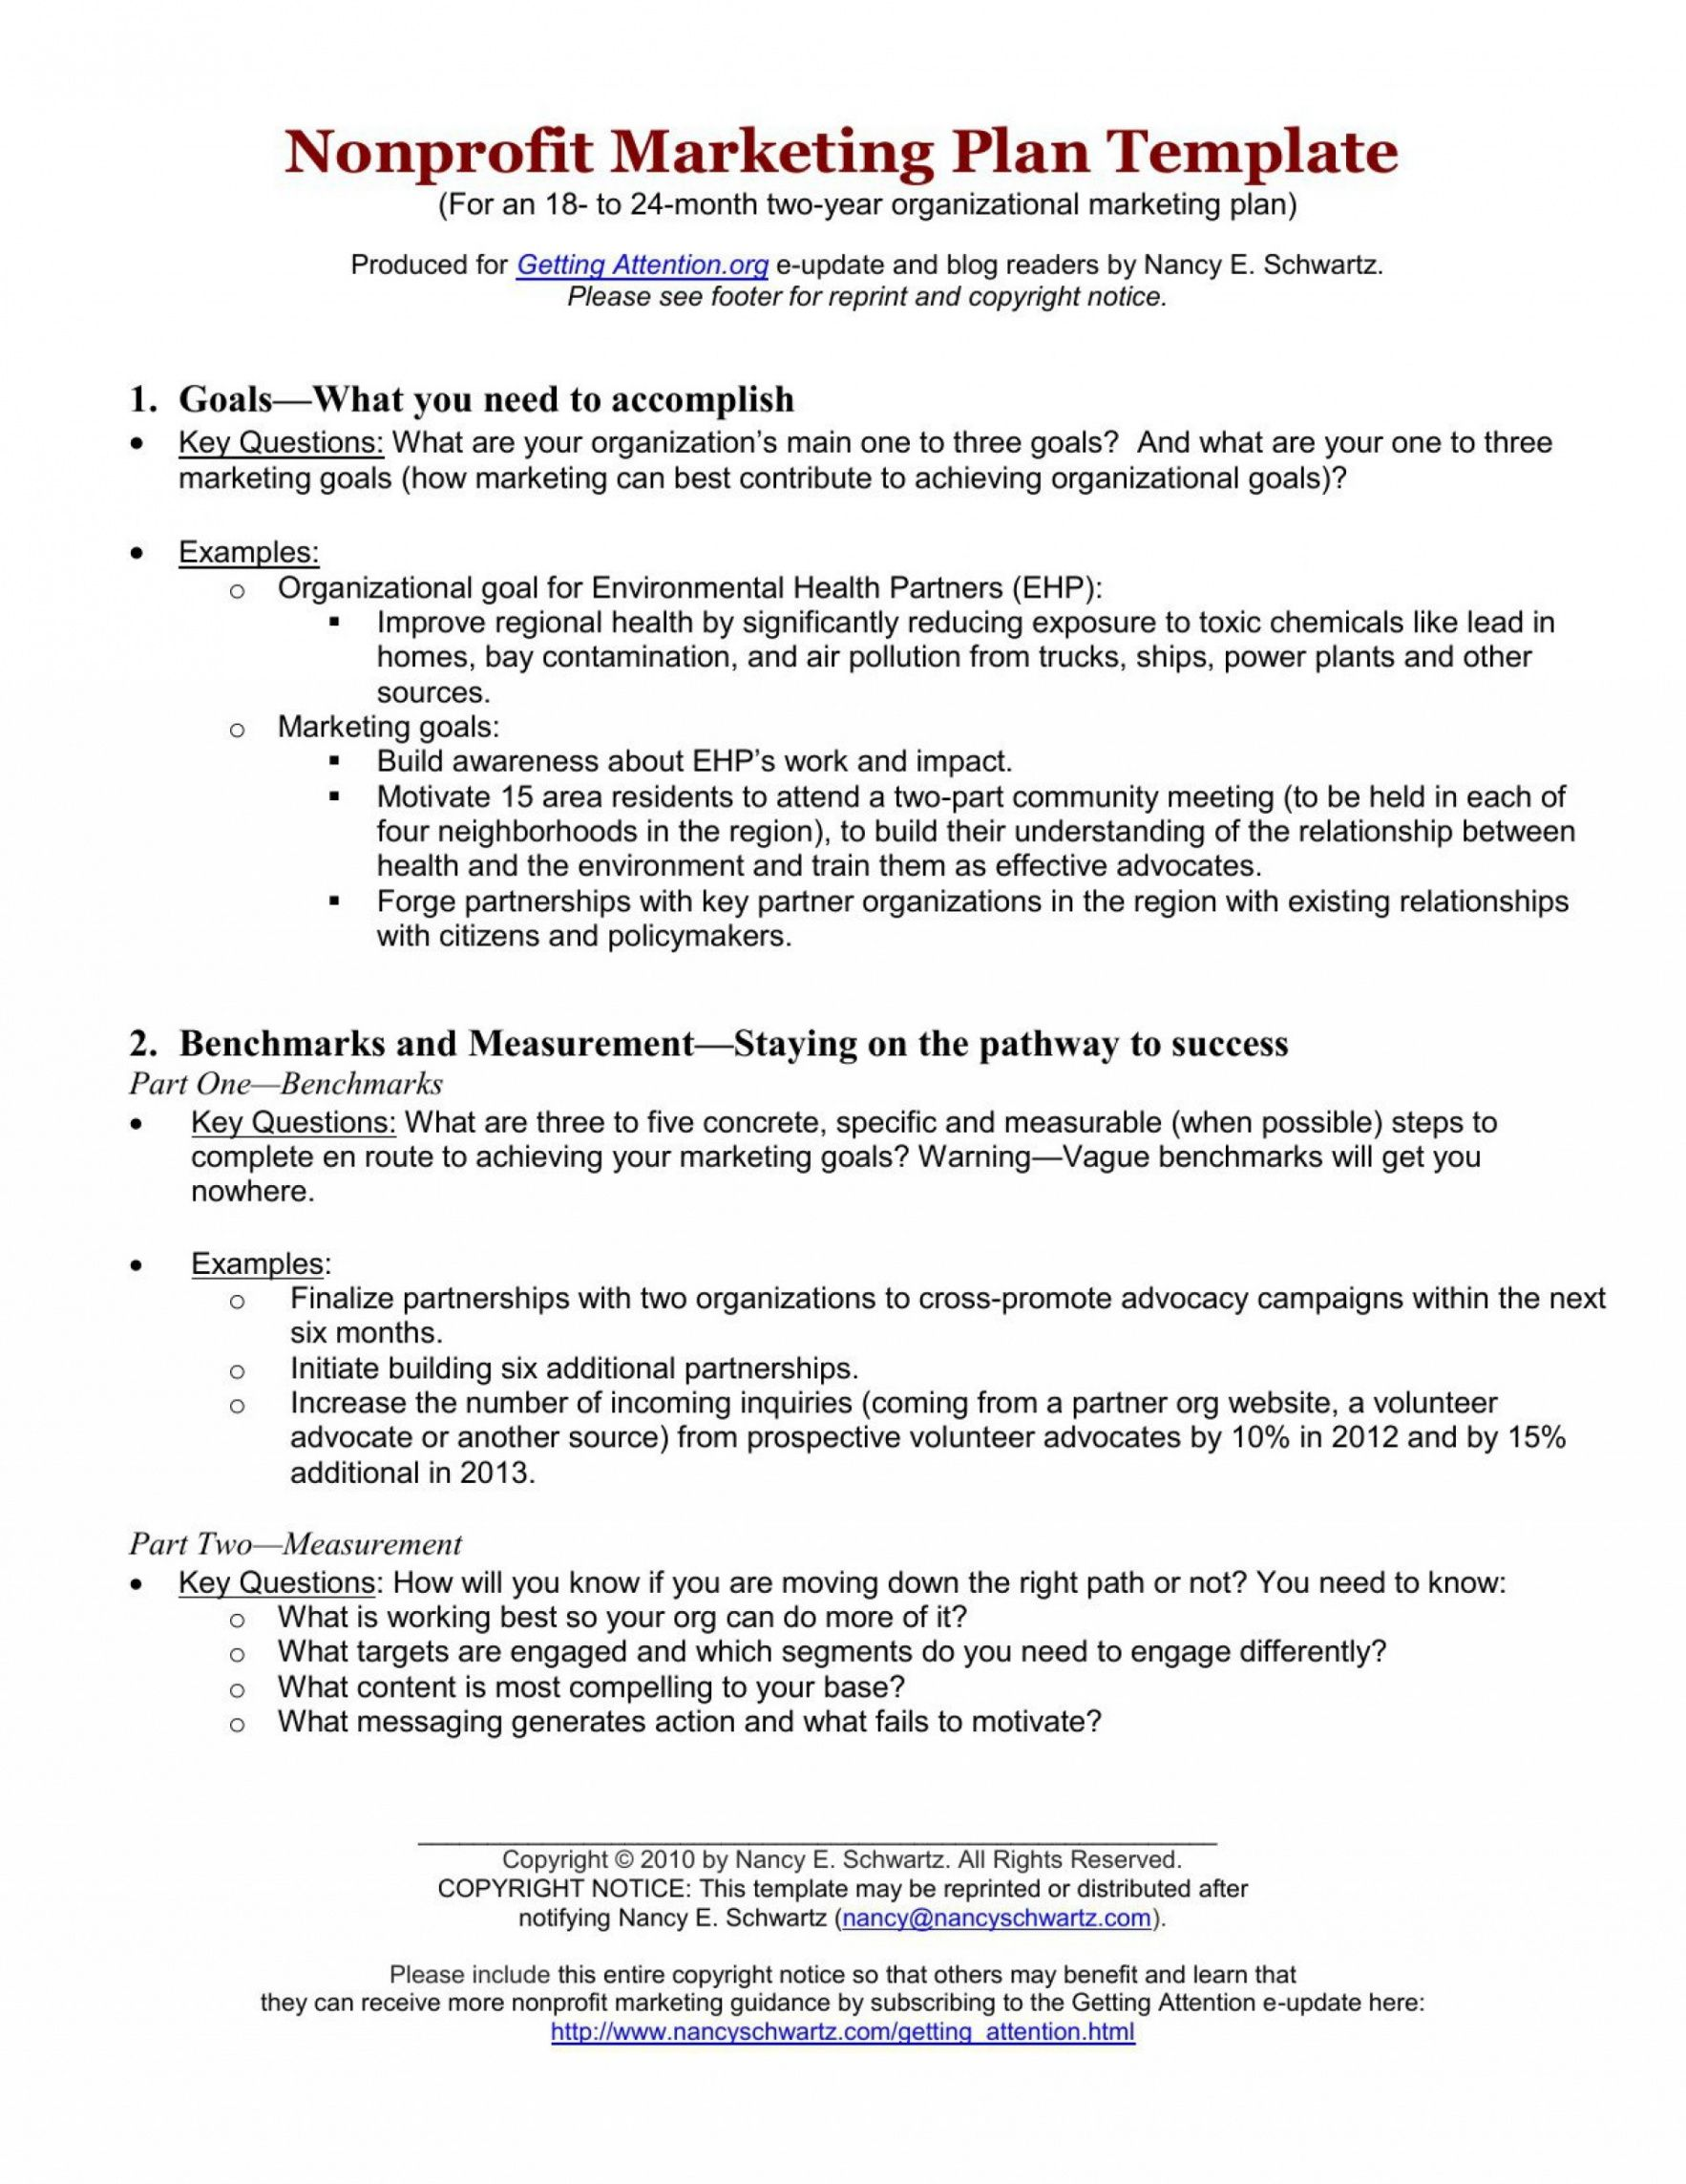 sample nonprofit marketing plan template ~ addictionary nonprofit marketing plan template sample